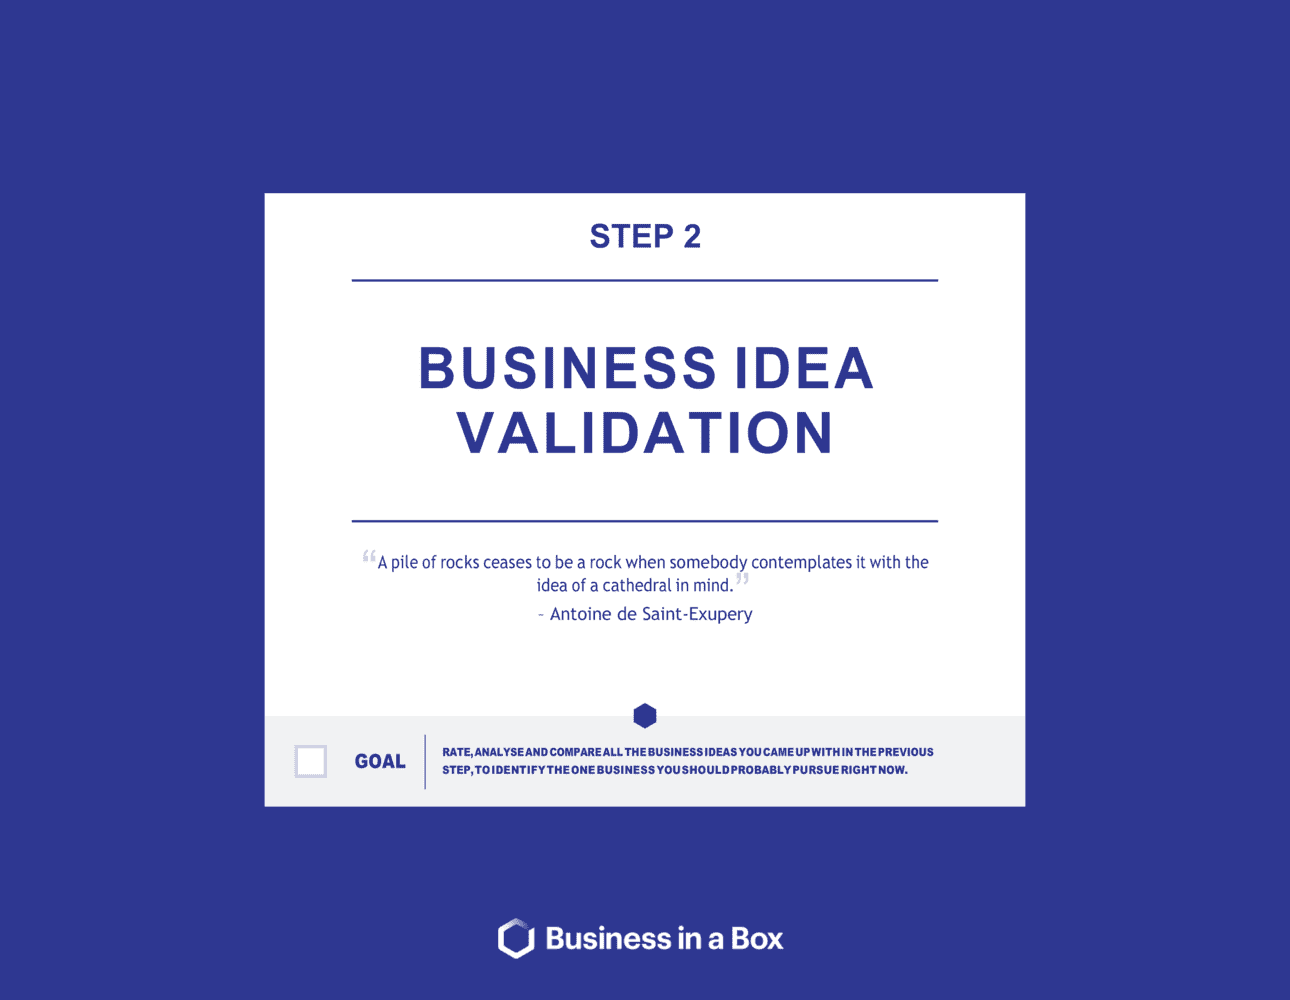 Business-in-a-Box's Business Idea Validation_startup Blueprints_chapter 2 Template